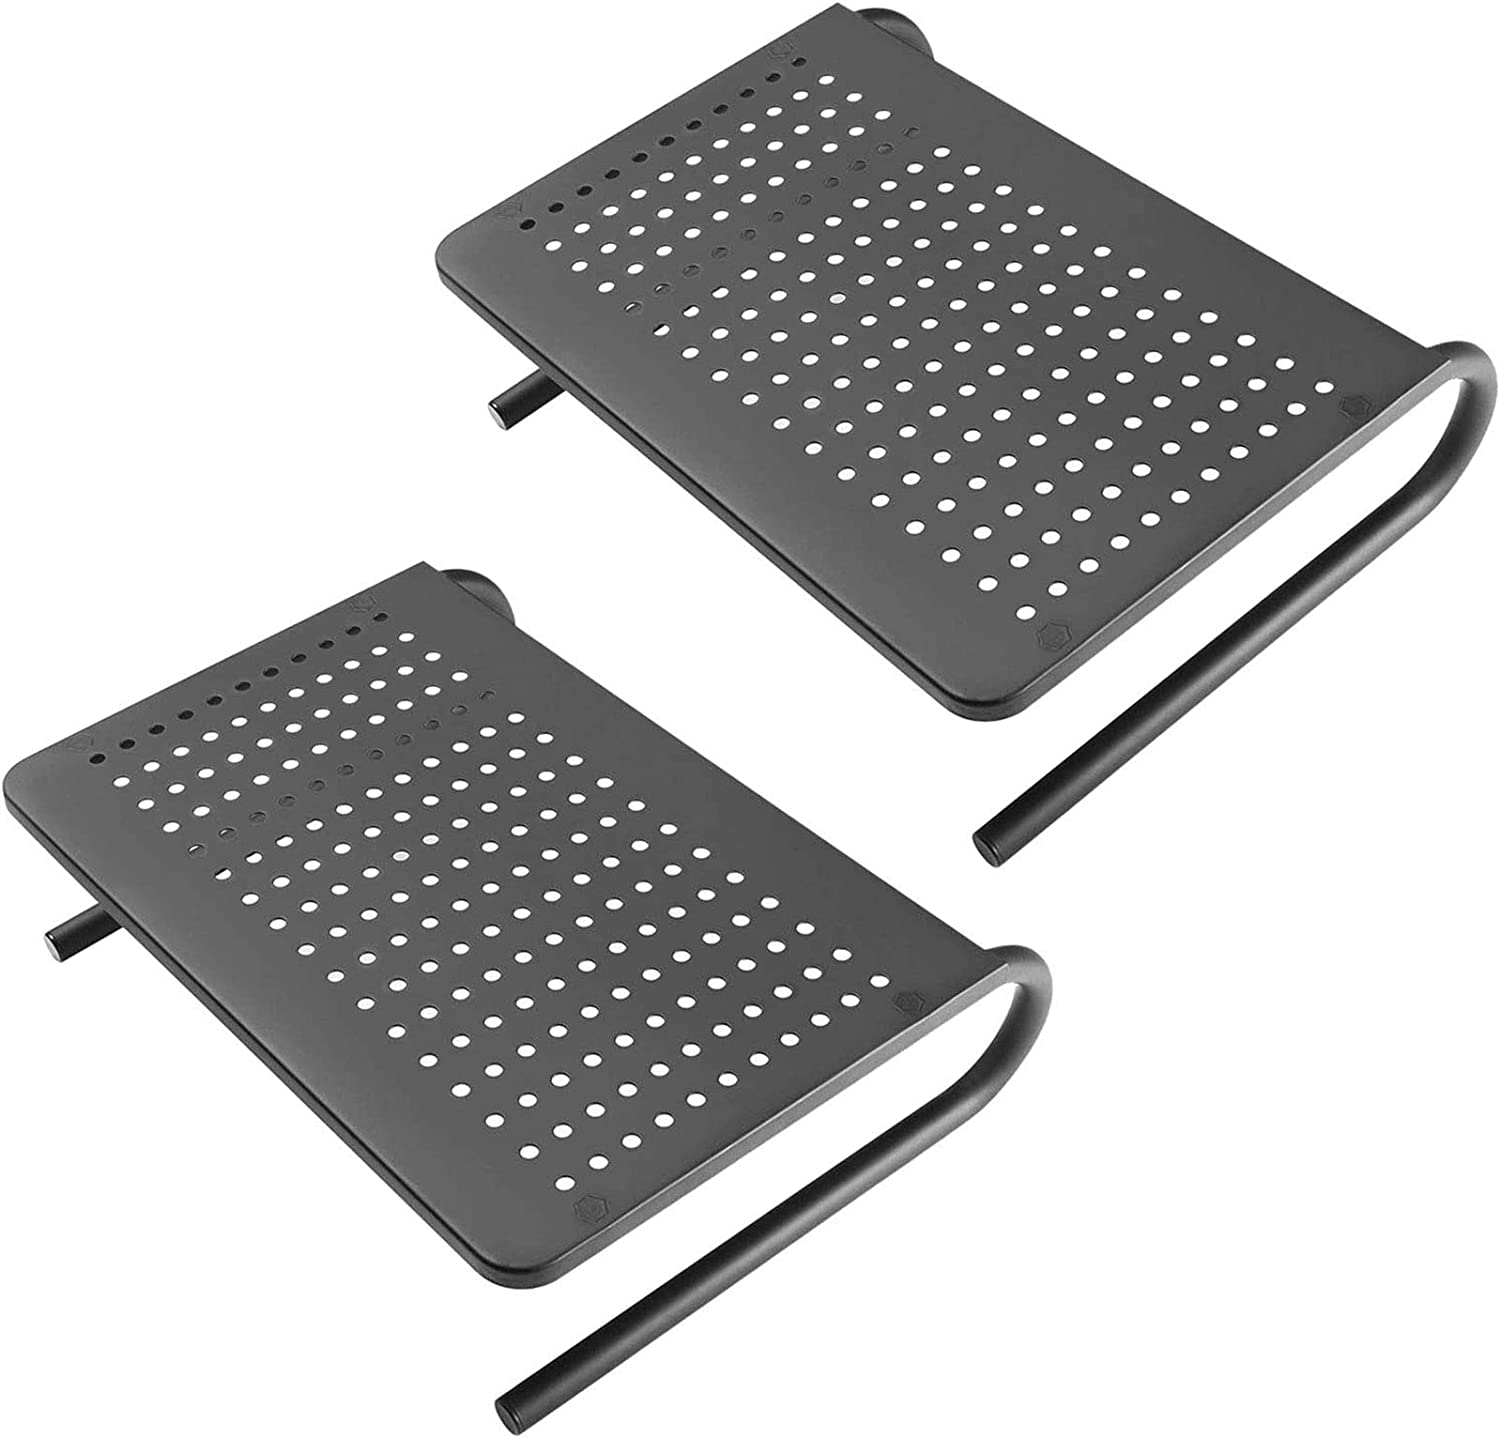 HUANUO Monitor Stand Riser with Vented Metal for Computer, Laptop, Desk, Printer with 14.5 Platform 4 inch Height (Black, 2 Pack)